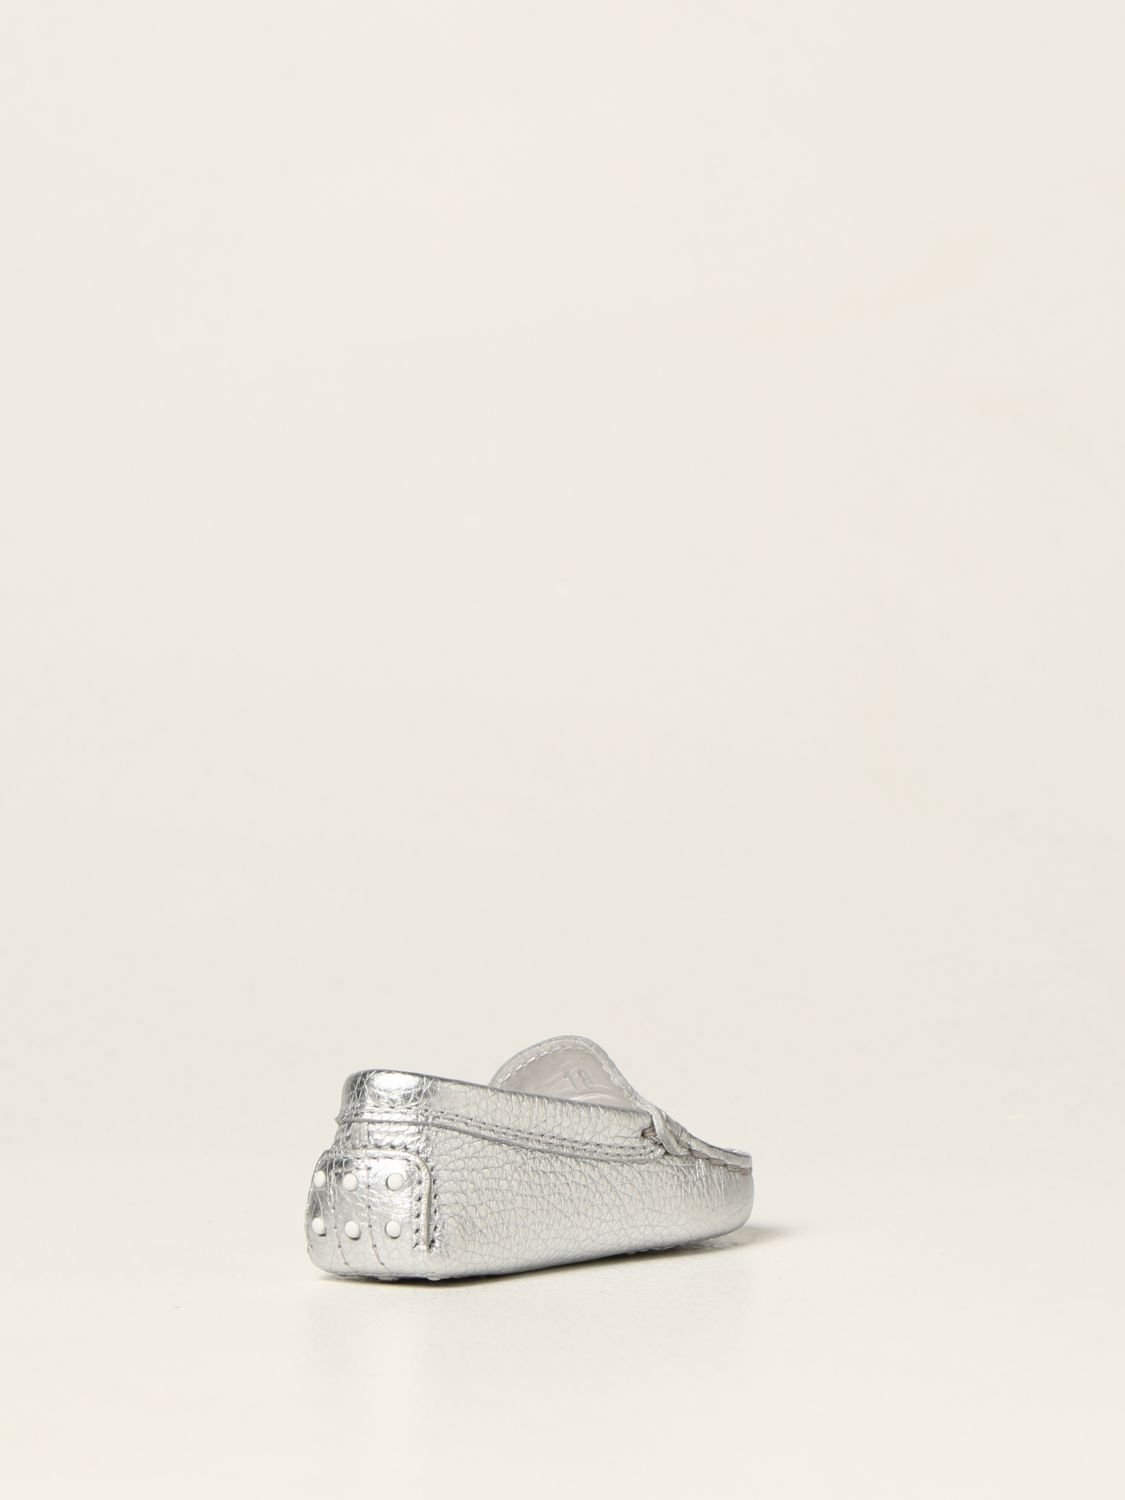 Shoes Tods: Tod's moccasins in laminated leather silver 3